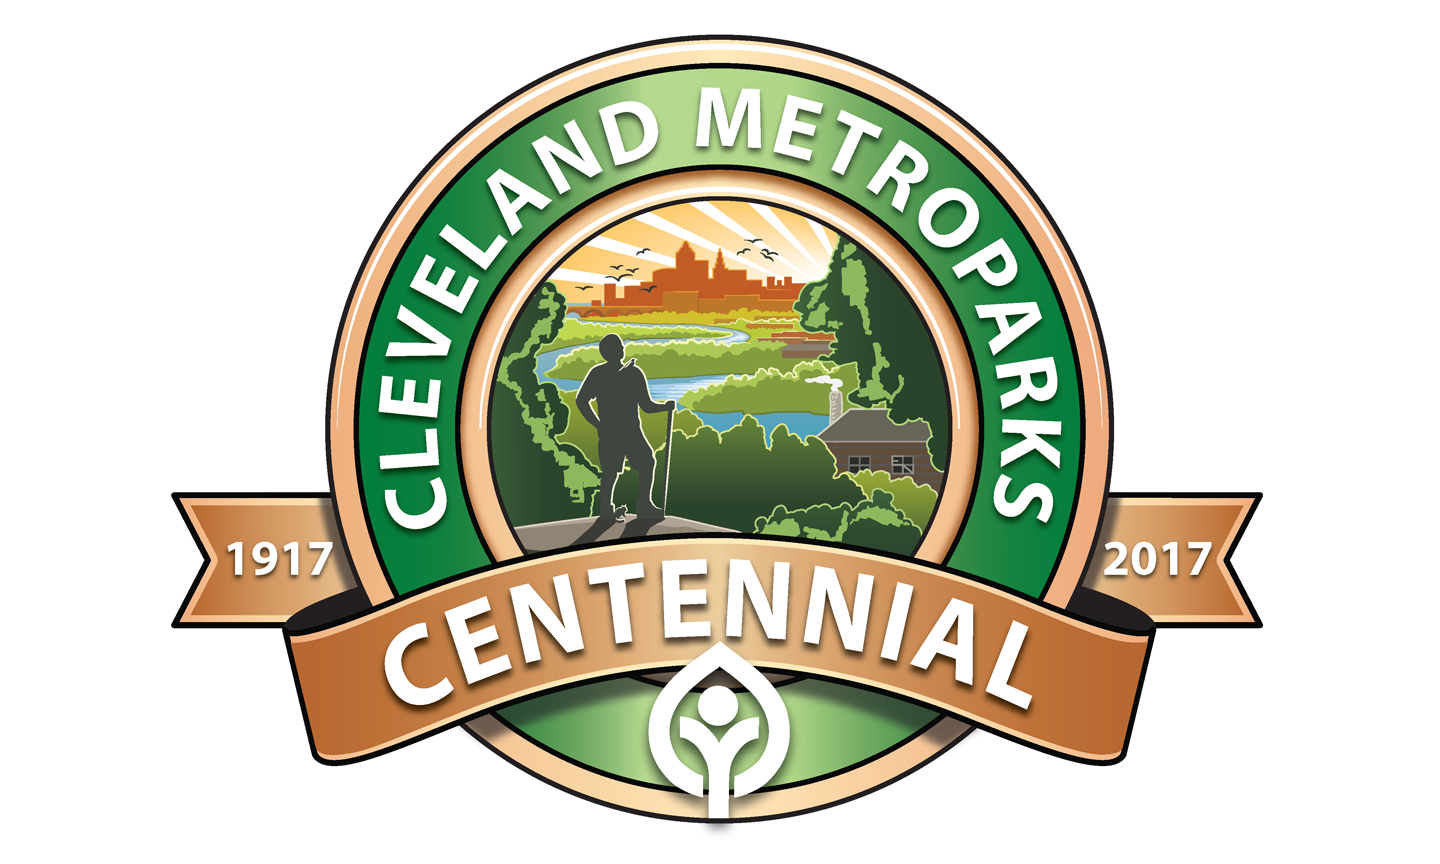 Cleveland Metroparks Centennial Contests